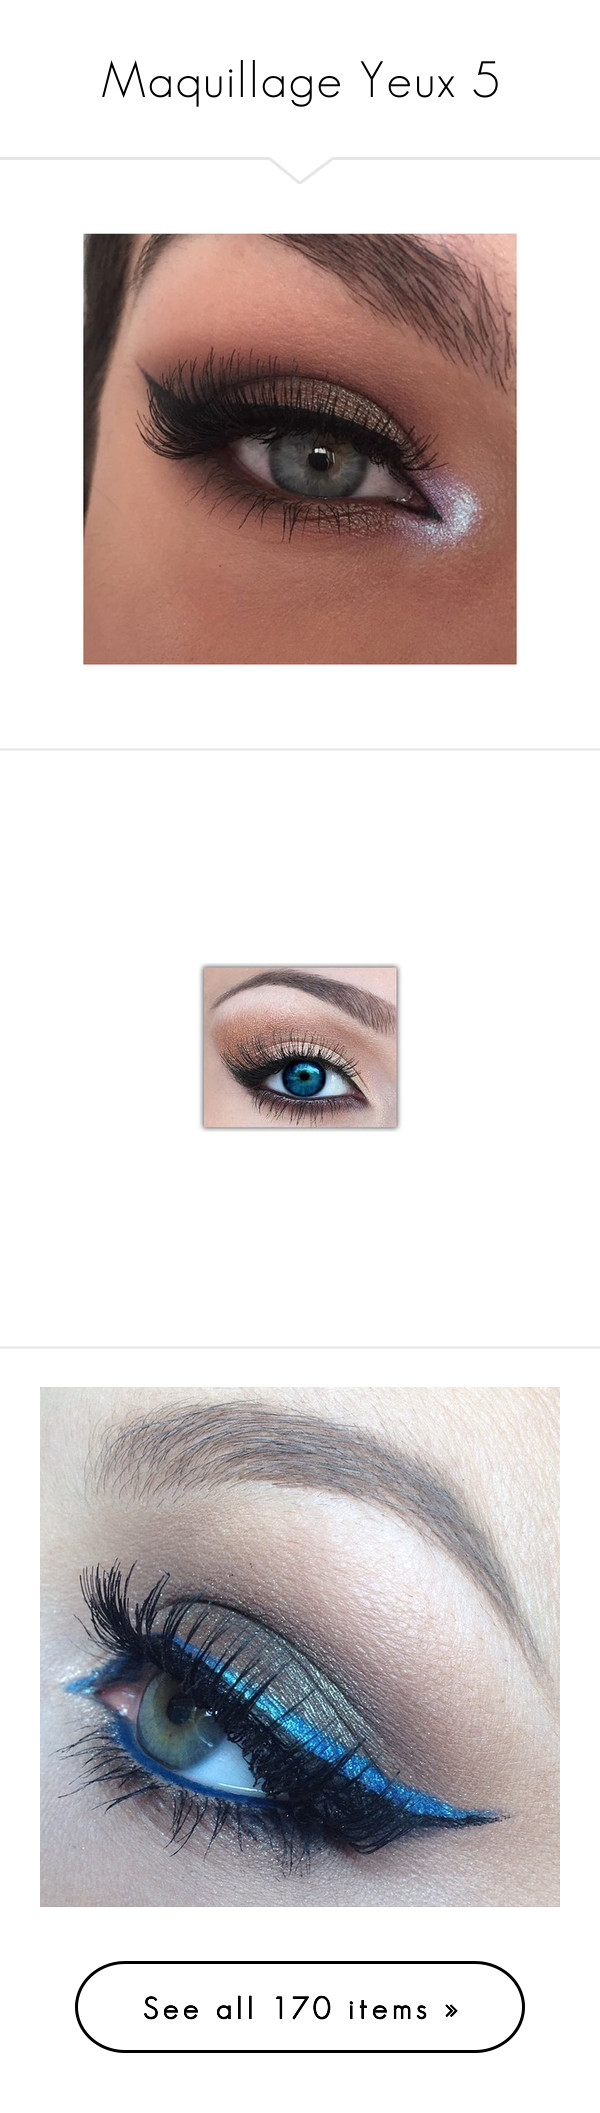 """""""Maquillage Yeux 5"""" by laurie-bieber ❤ liked on Polyvore featuring makeup, eyes, beauty products, eye makeup, beauty, kohl makeup, black eye makeup, black makeup, hair and mascara"""